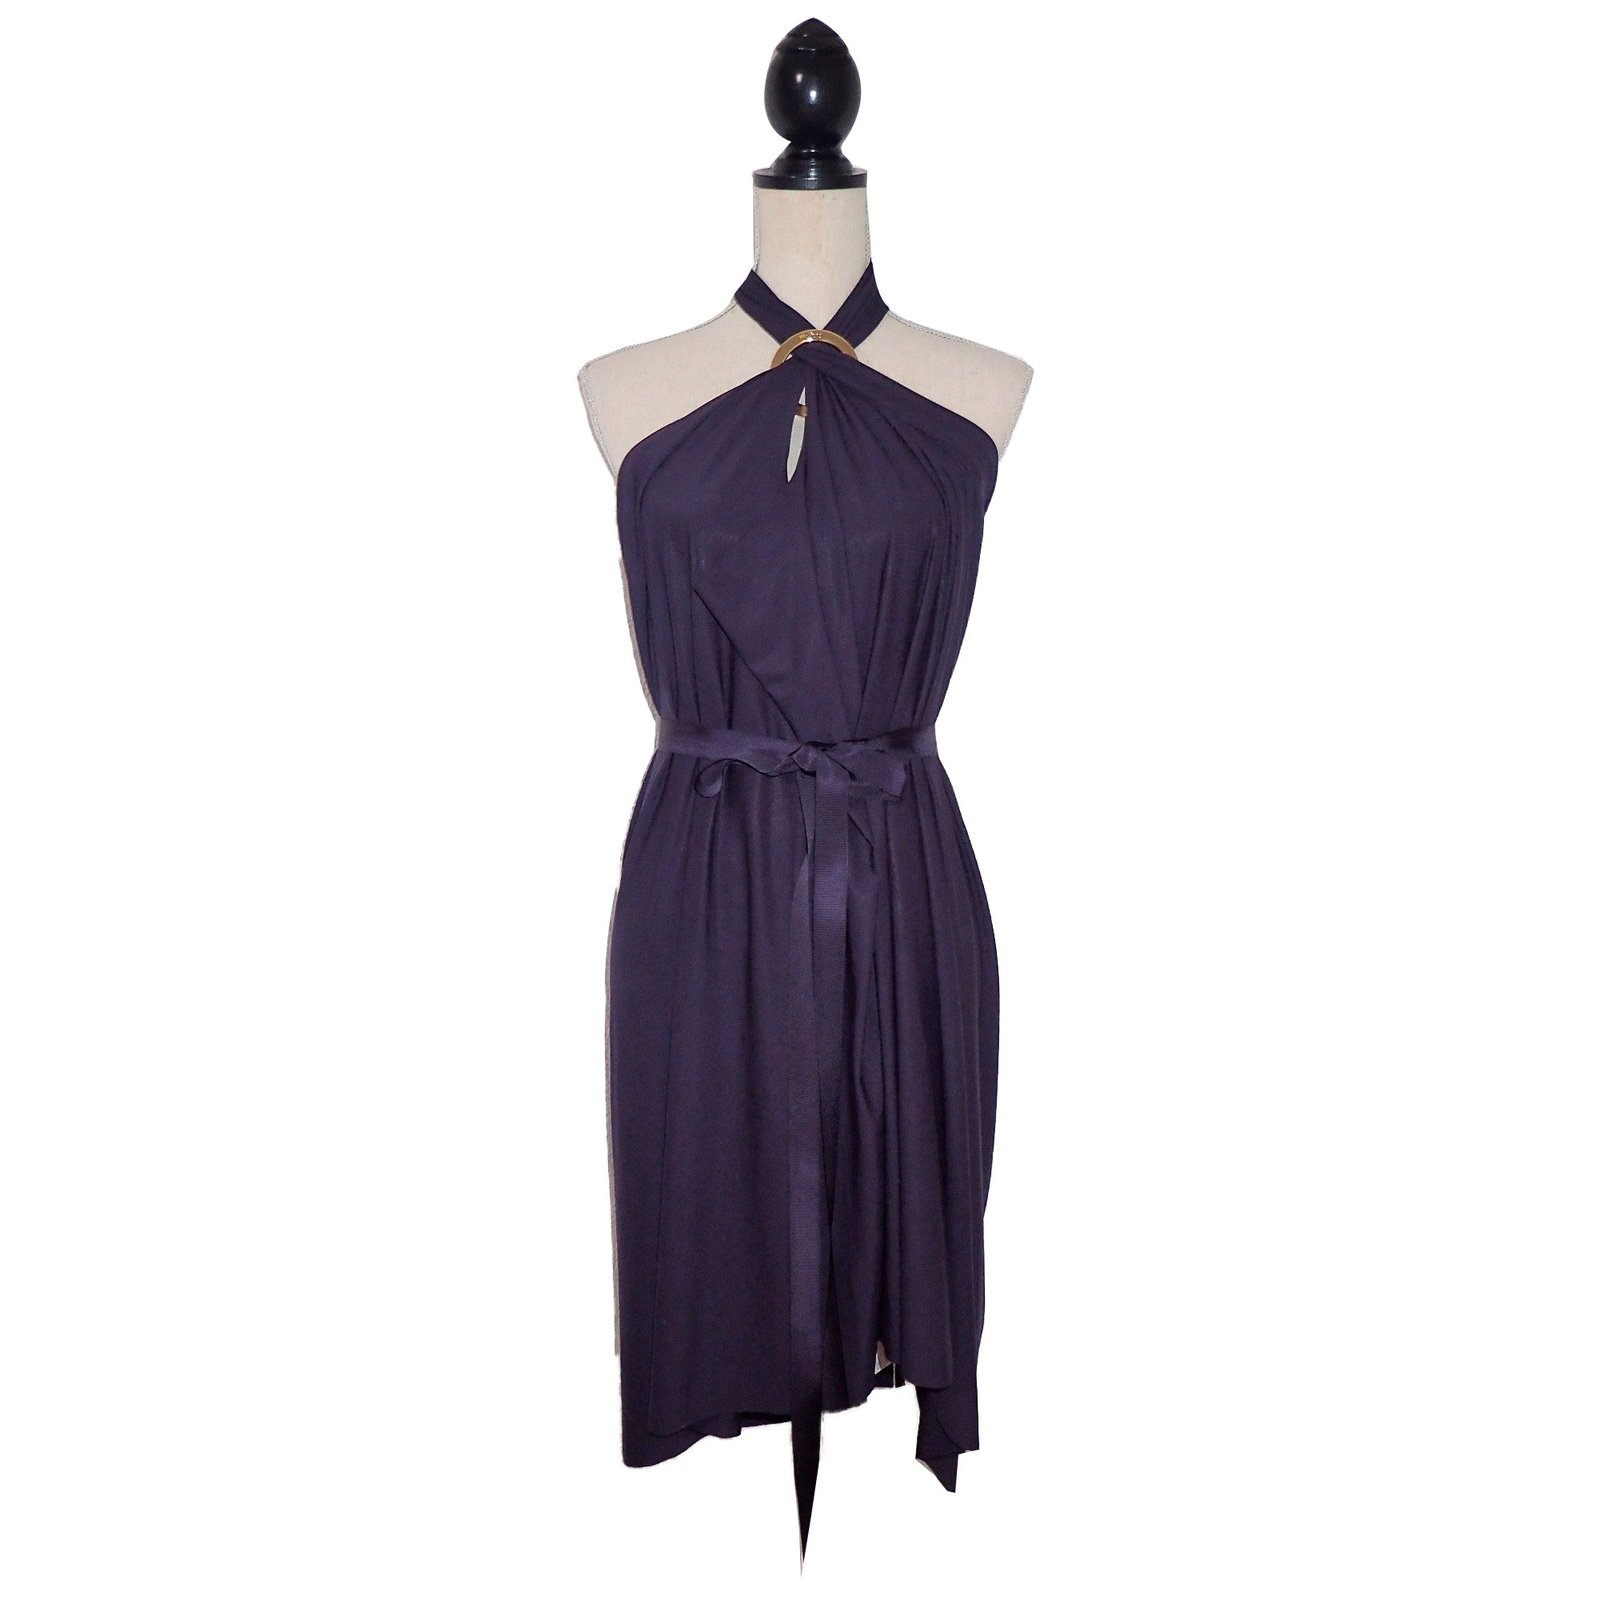 Ref Robes Closet Violet Summer 76934 Dress Modal Wolford Joli Pure ArYqwUA